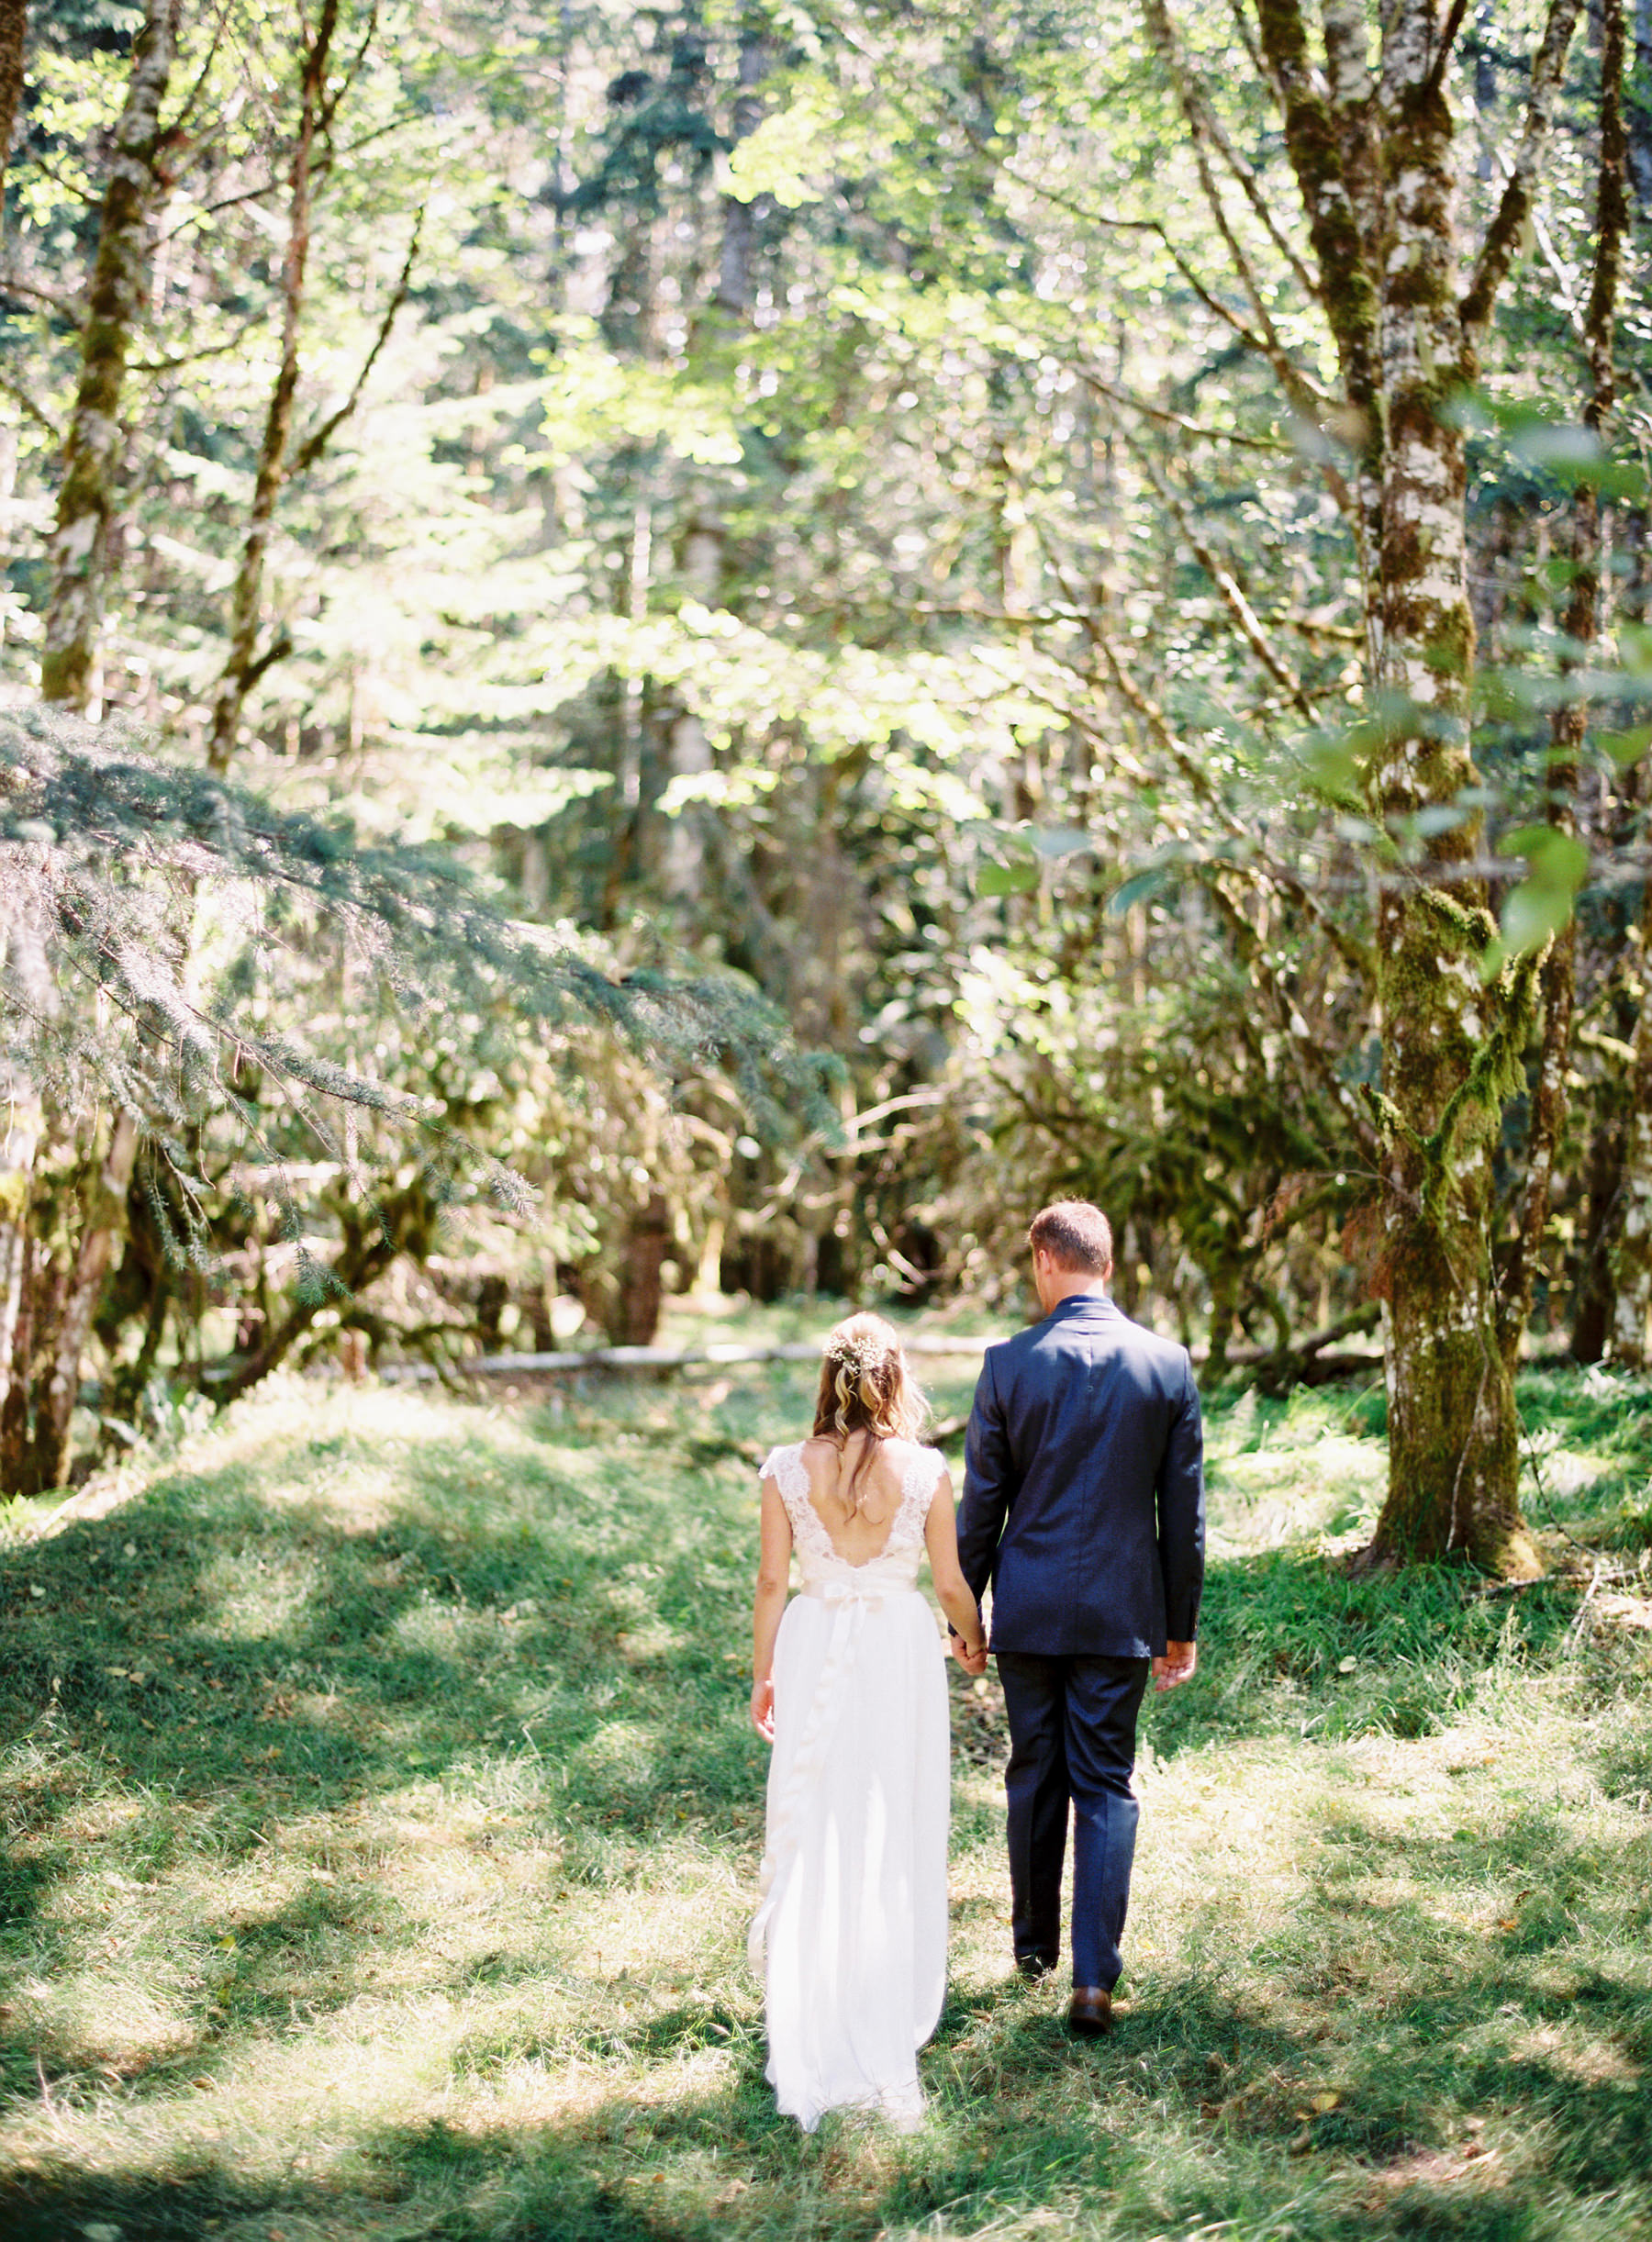 171-fine-art-film-wedding-portraits-at-nature-bride-near-the-lake-crescent-lodge.jpg